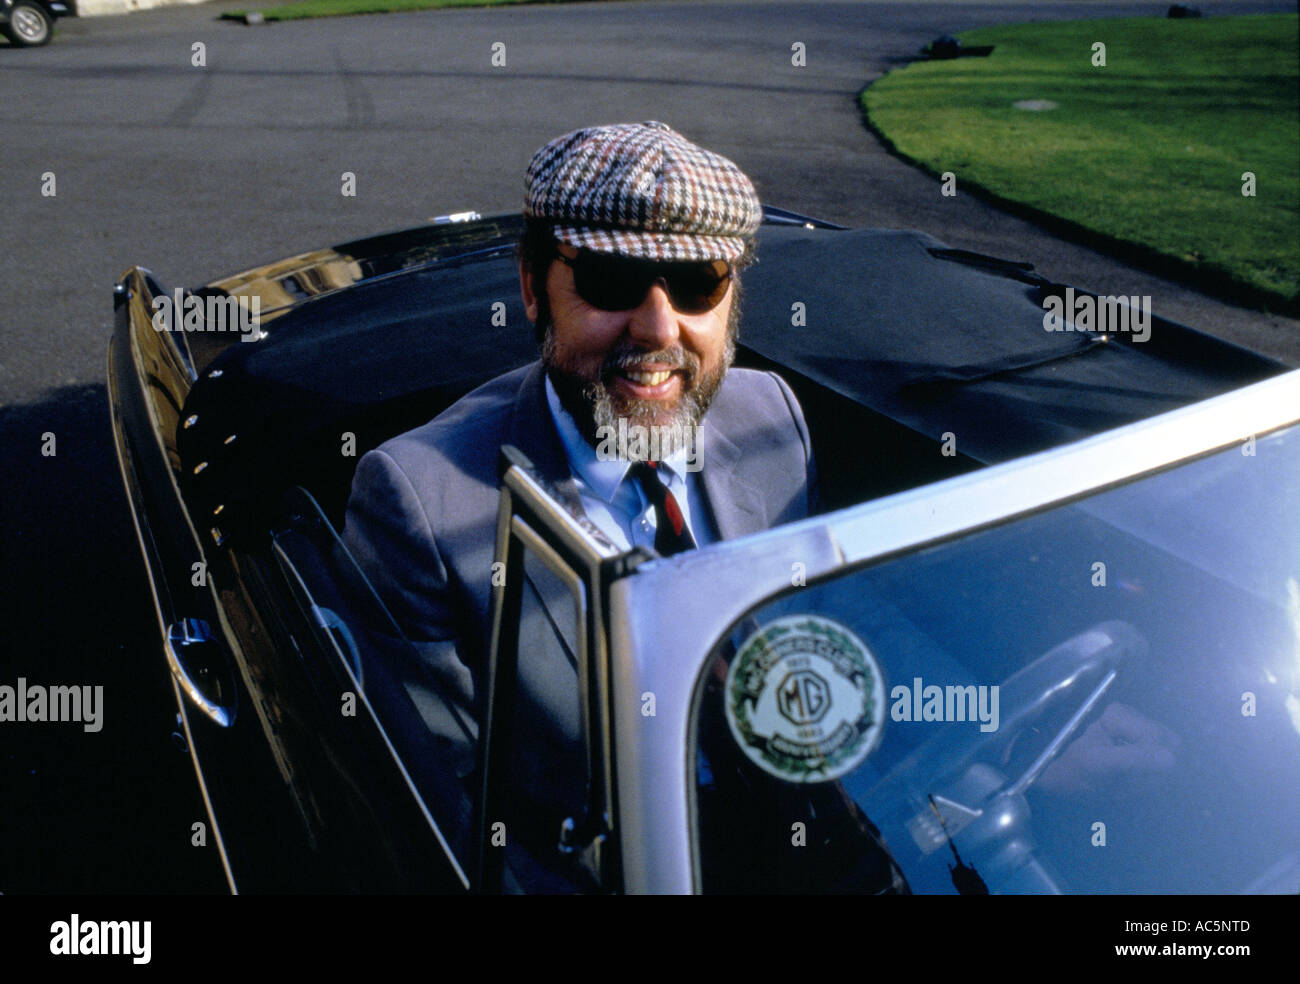 Terry Waite with his MG sports car smiling He is a British humanitarian best known for his work as a hostage negotiator - Stock Image